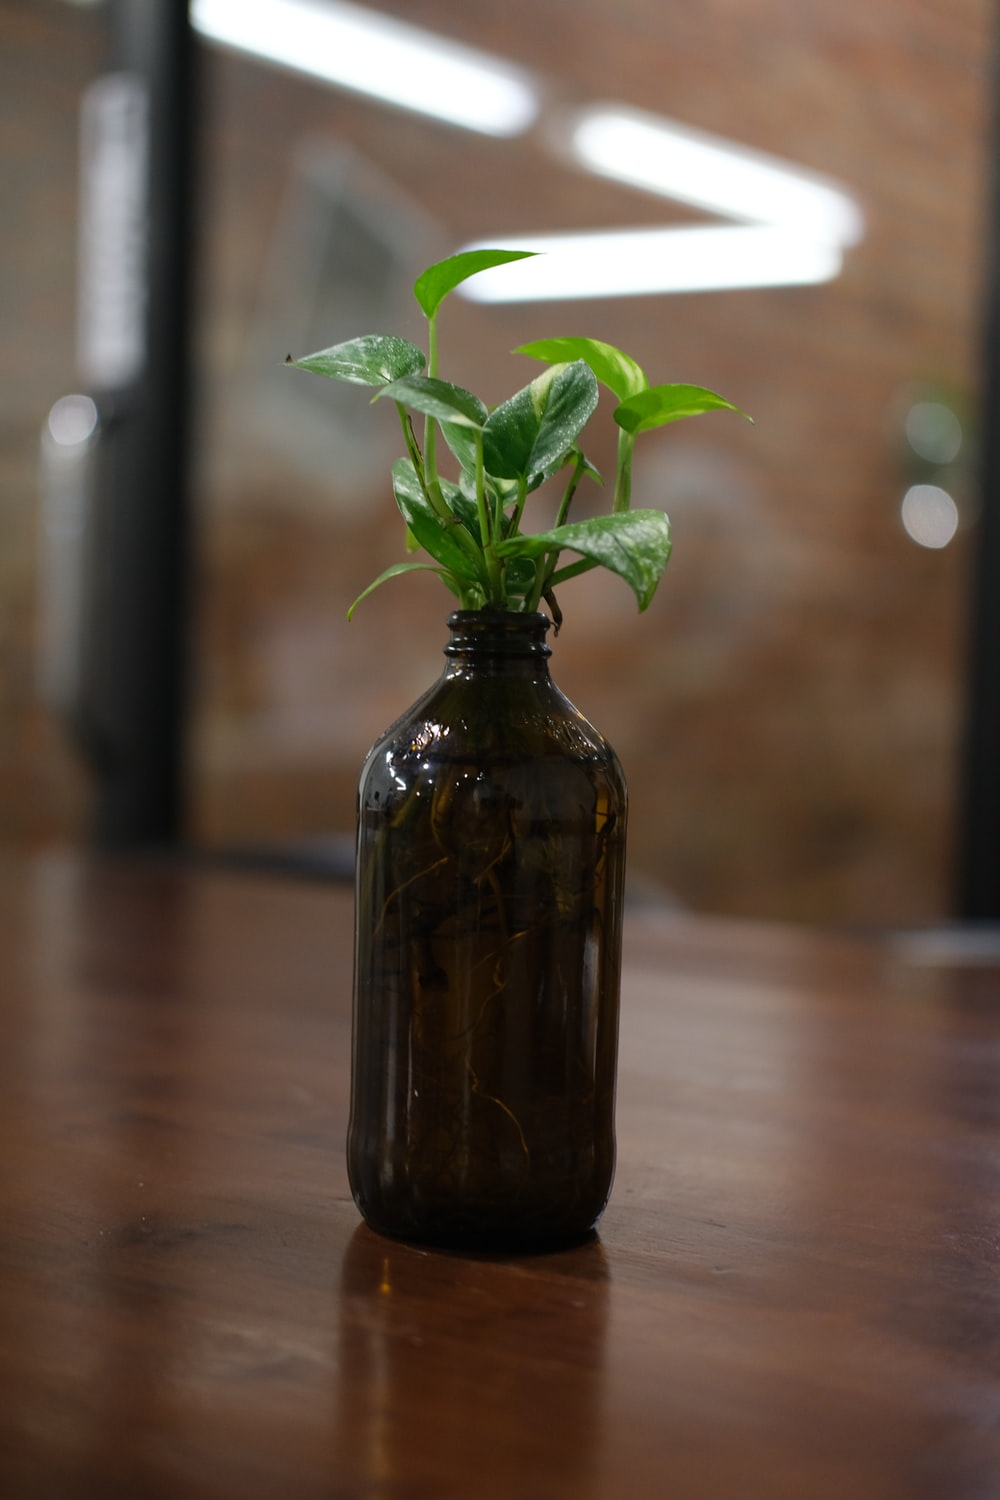 green plant in brown glass bottle